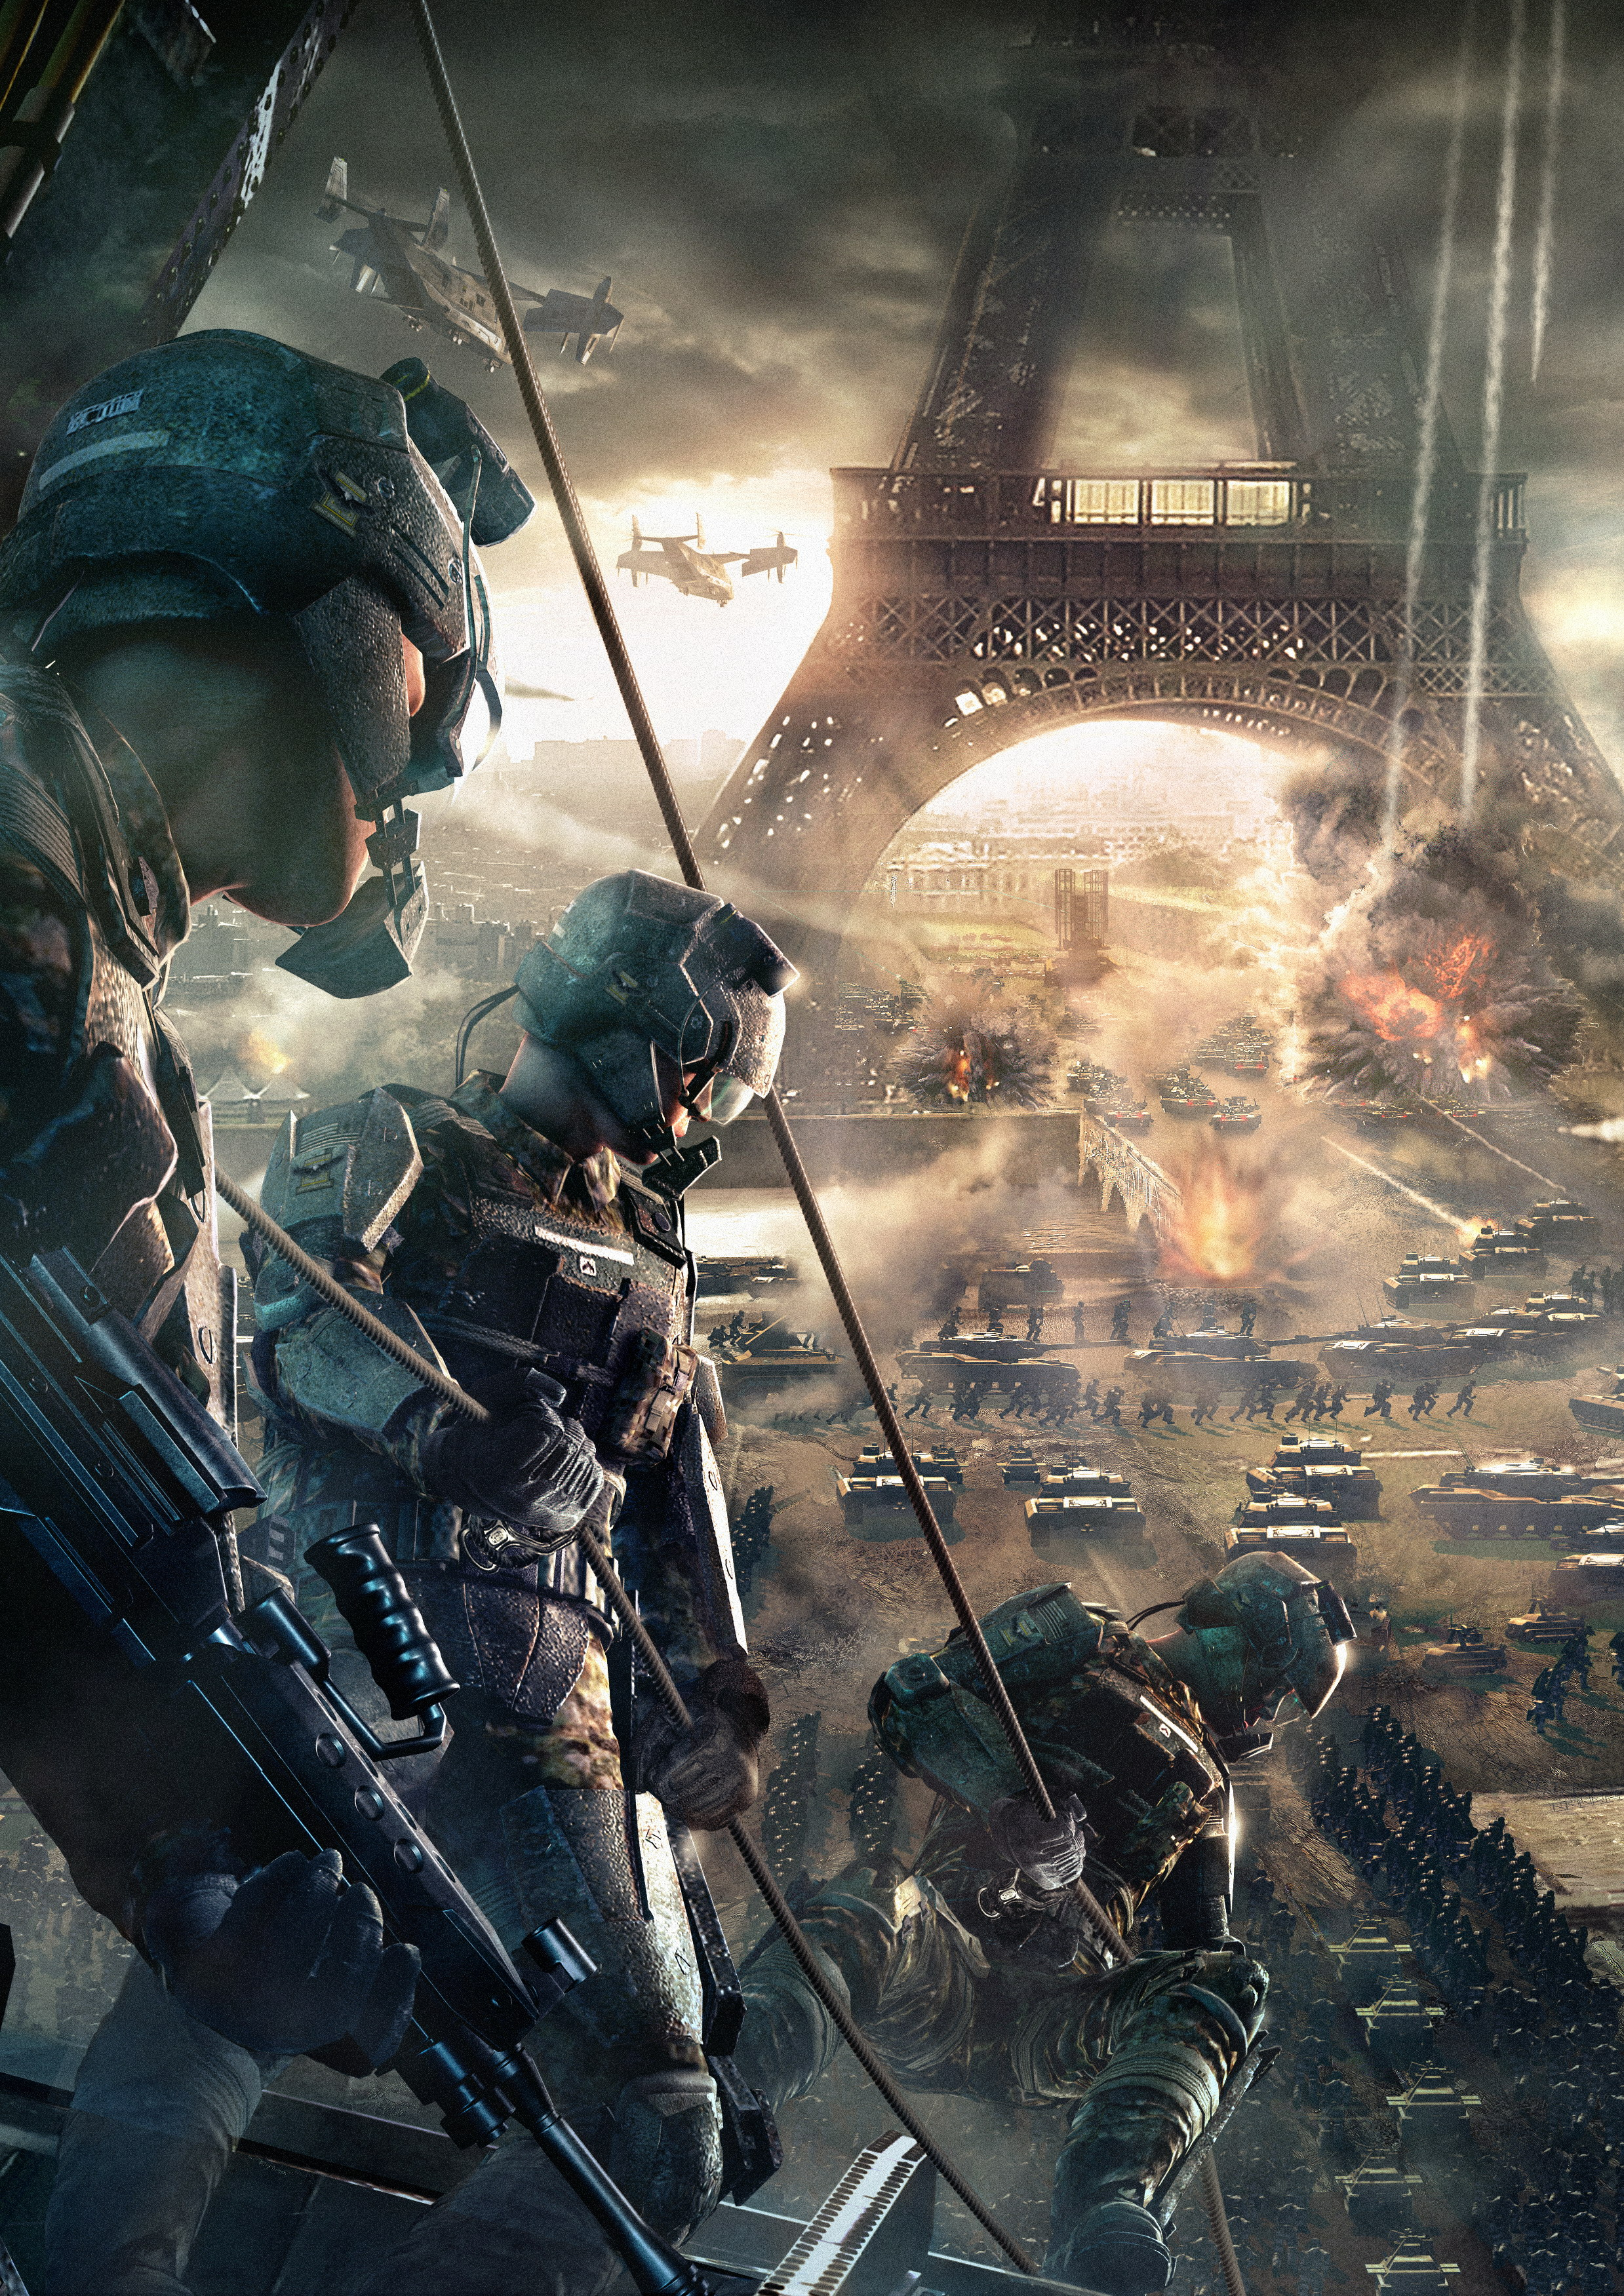 Eiffel Tower video games battles Tom Clancy Endwar Wallpapers 2477x3503